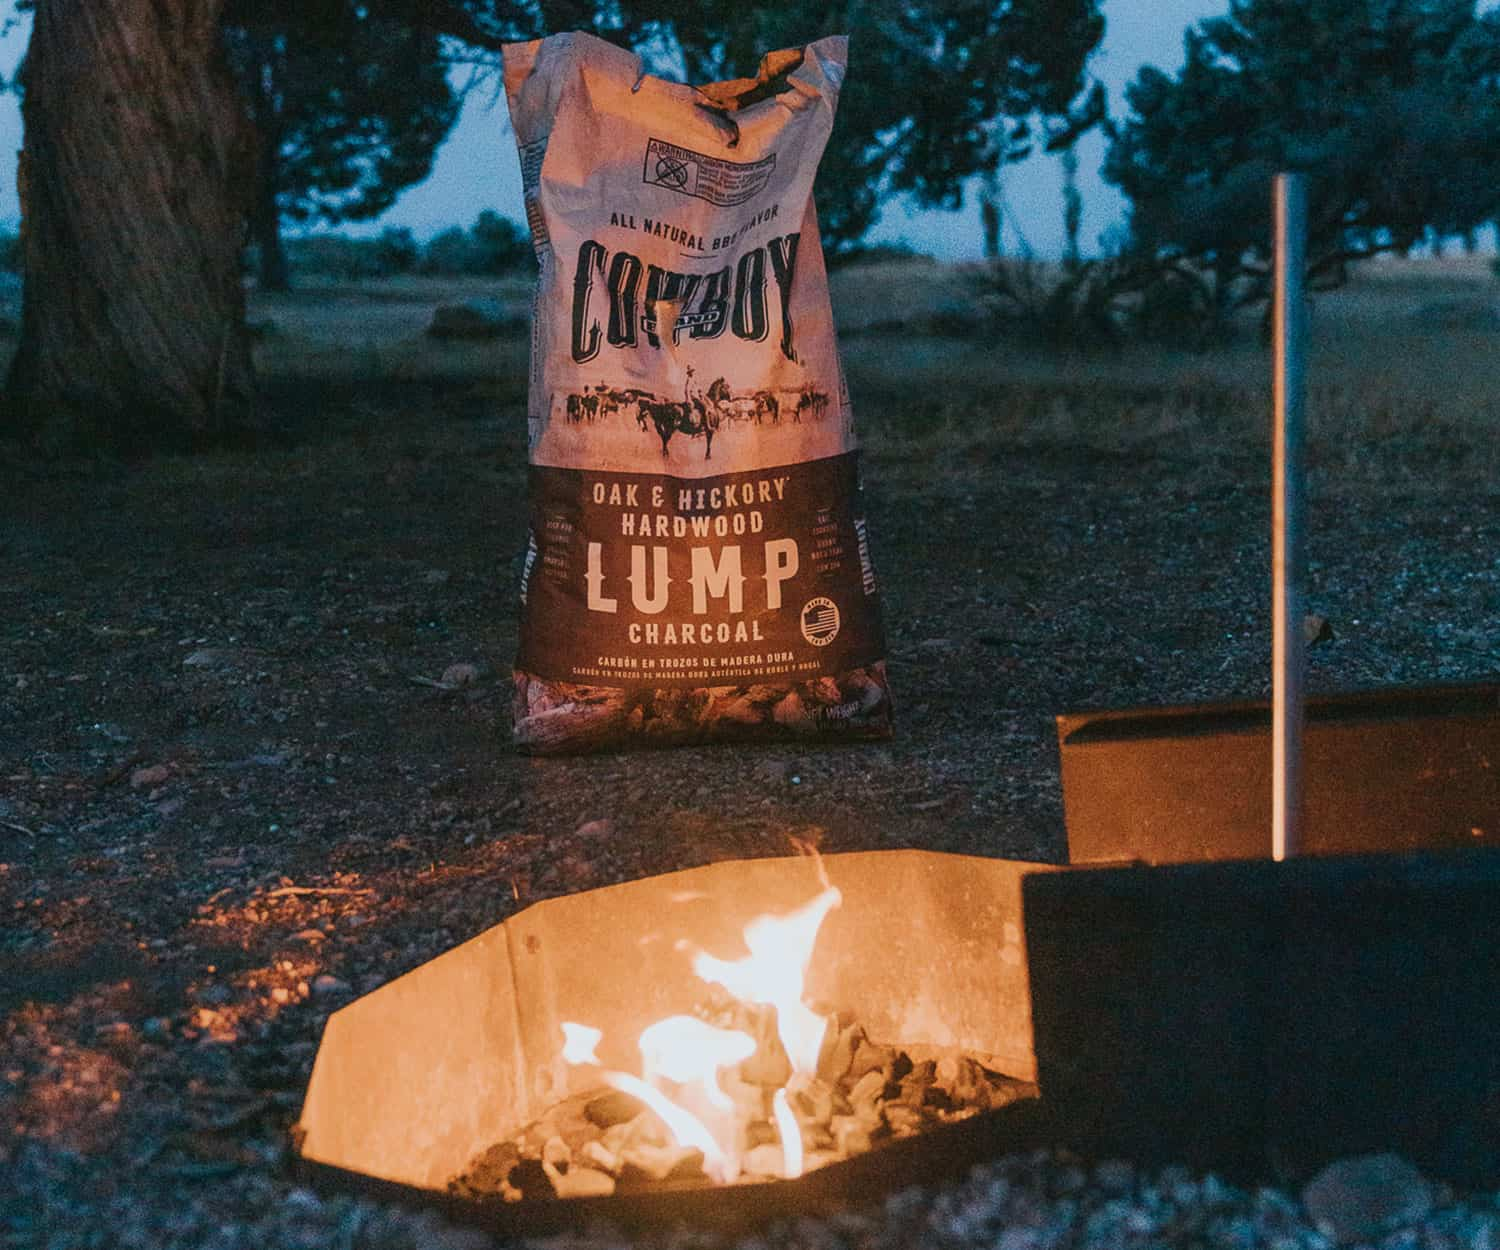 bag of charcoal by fire